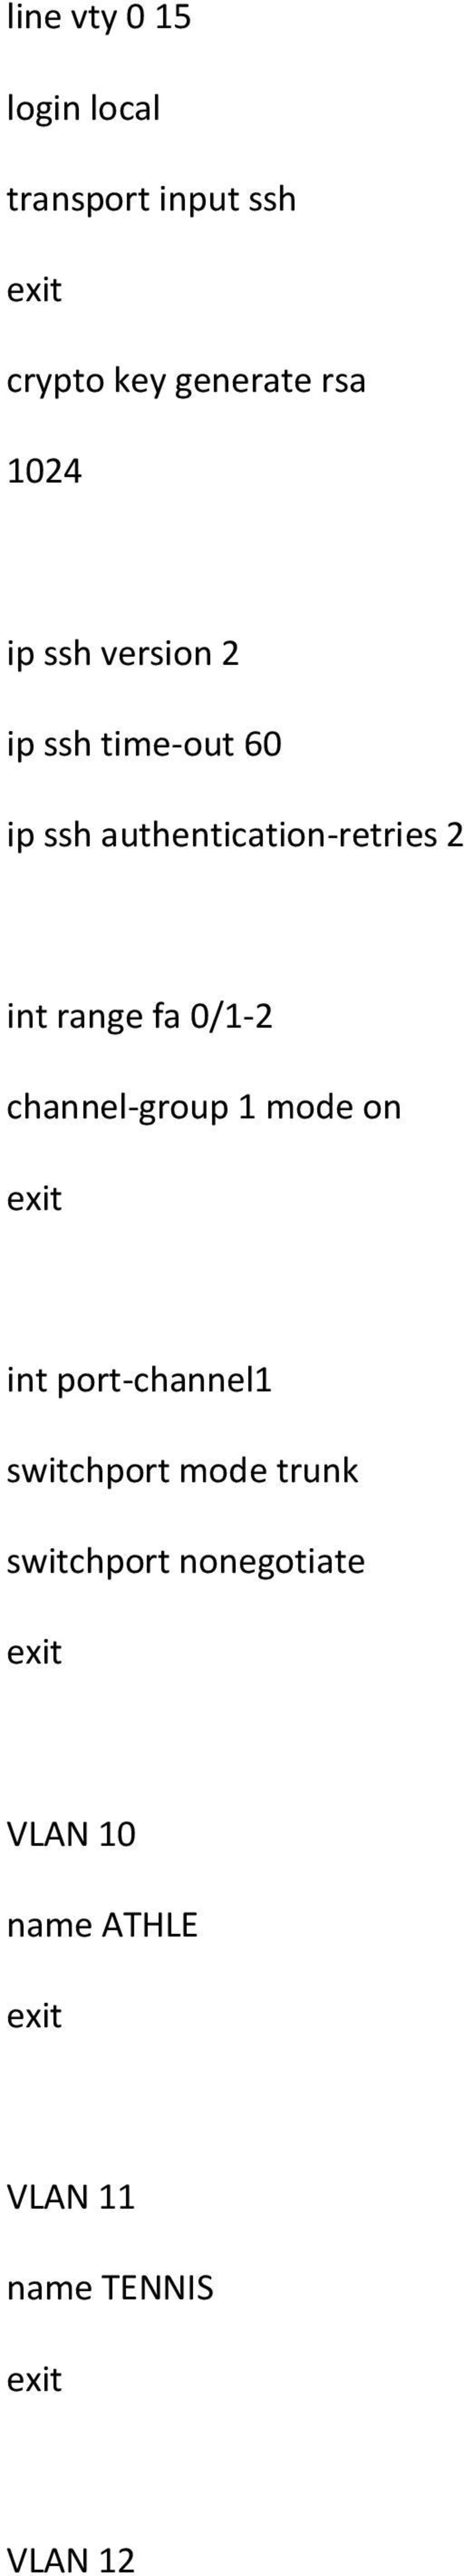 int range fa 0/1-2 channel-group 1 mode on int port-channel1 switchport